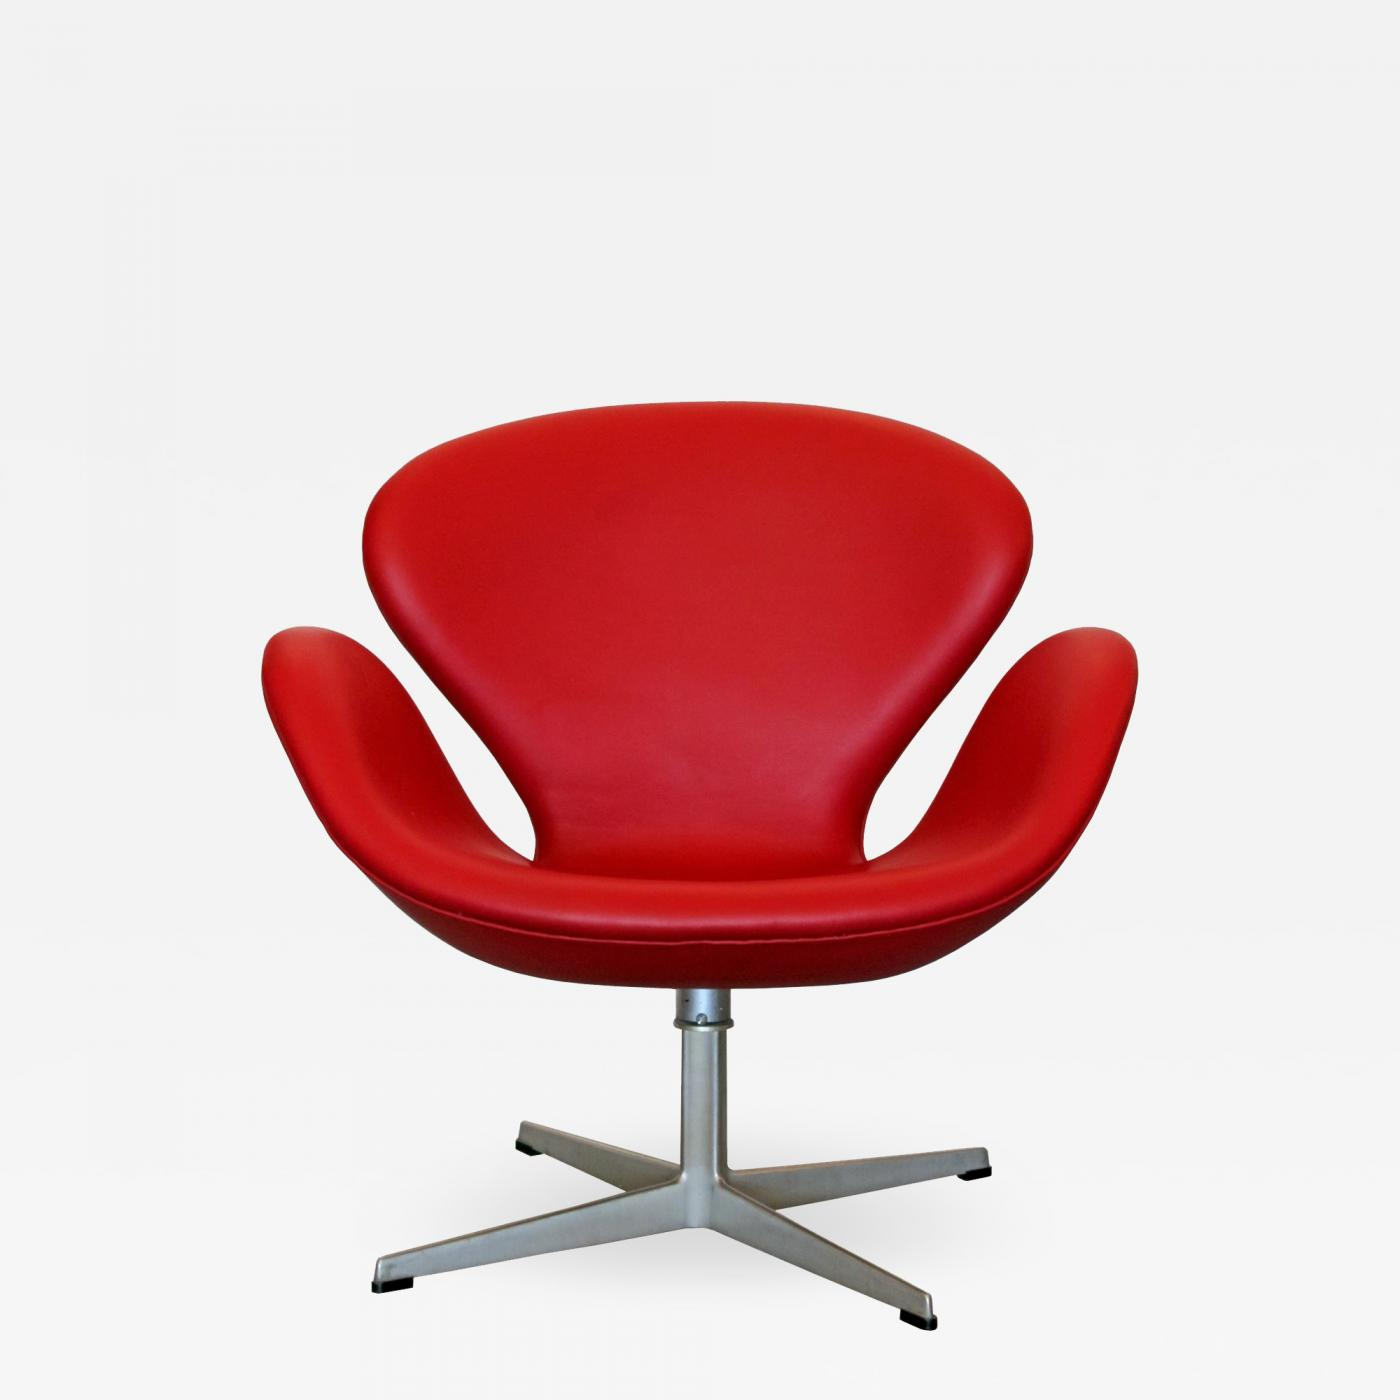 Arne Jacobsen Red Leather